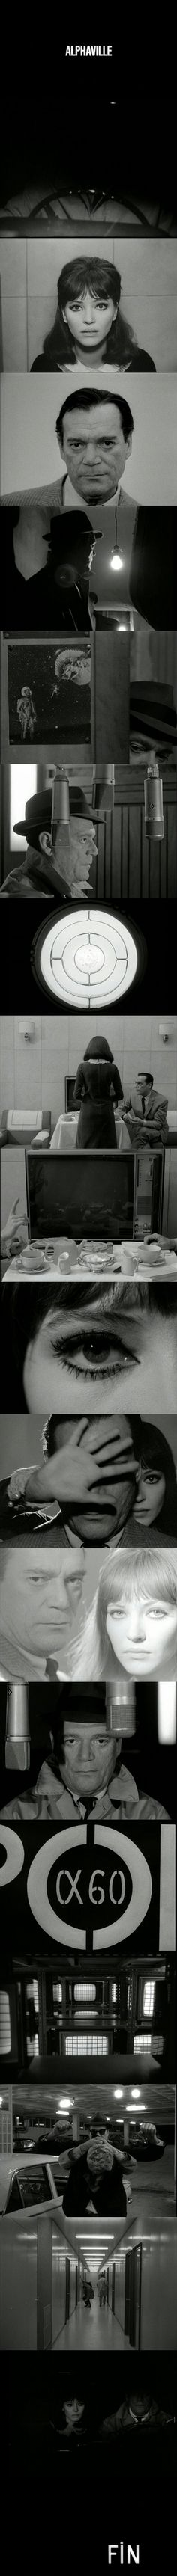 Alphaville (1965) Directed by Jean-Luc Godard. Cinematography by Raoul Coutard.